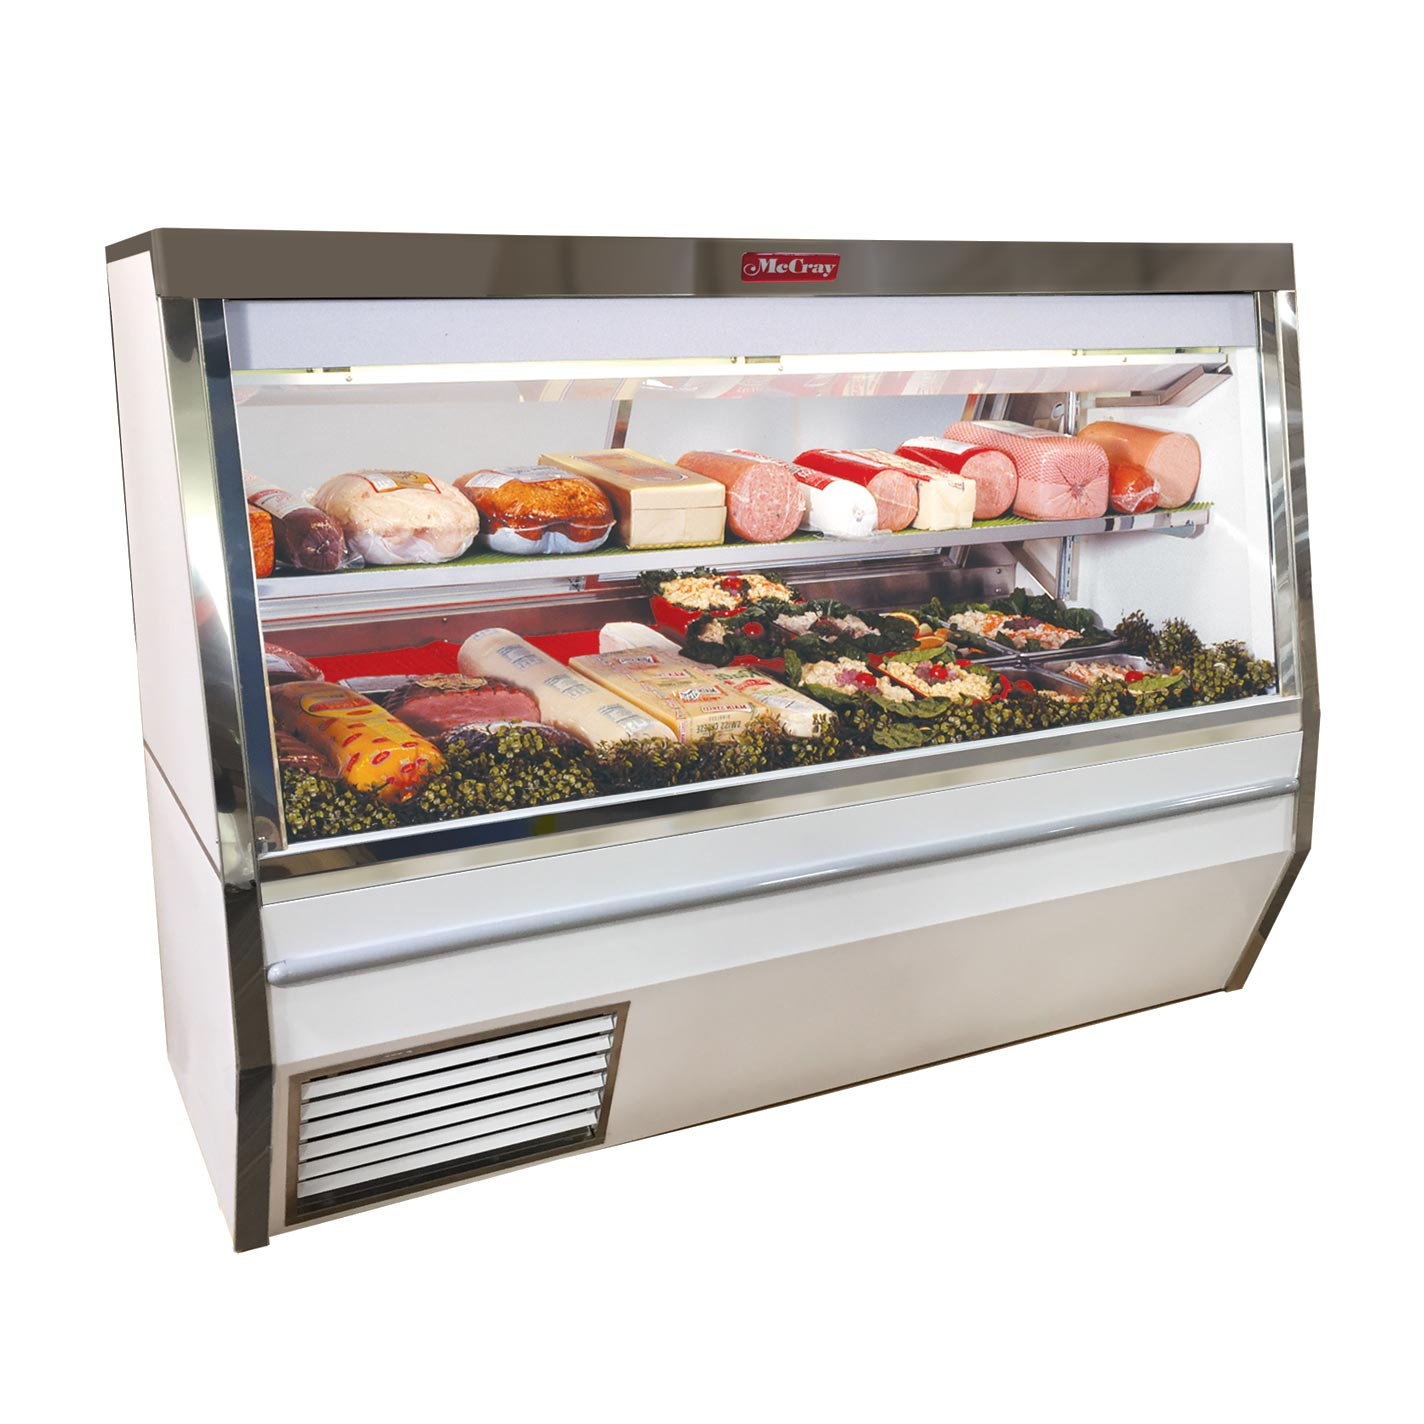 Howard-McCray R-CDS34N-10-S-LS-LED display case, refrigerated deli